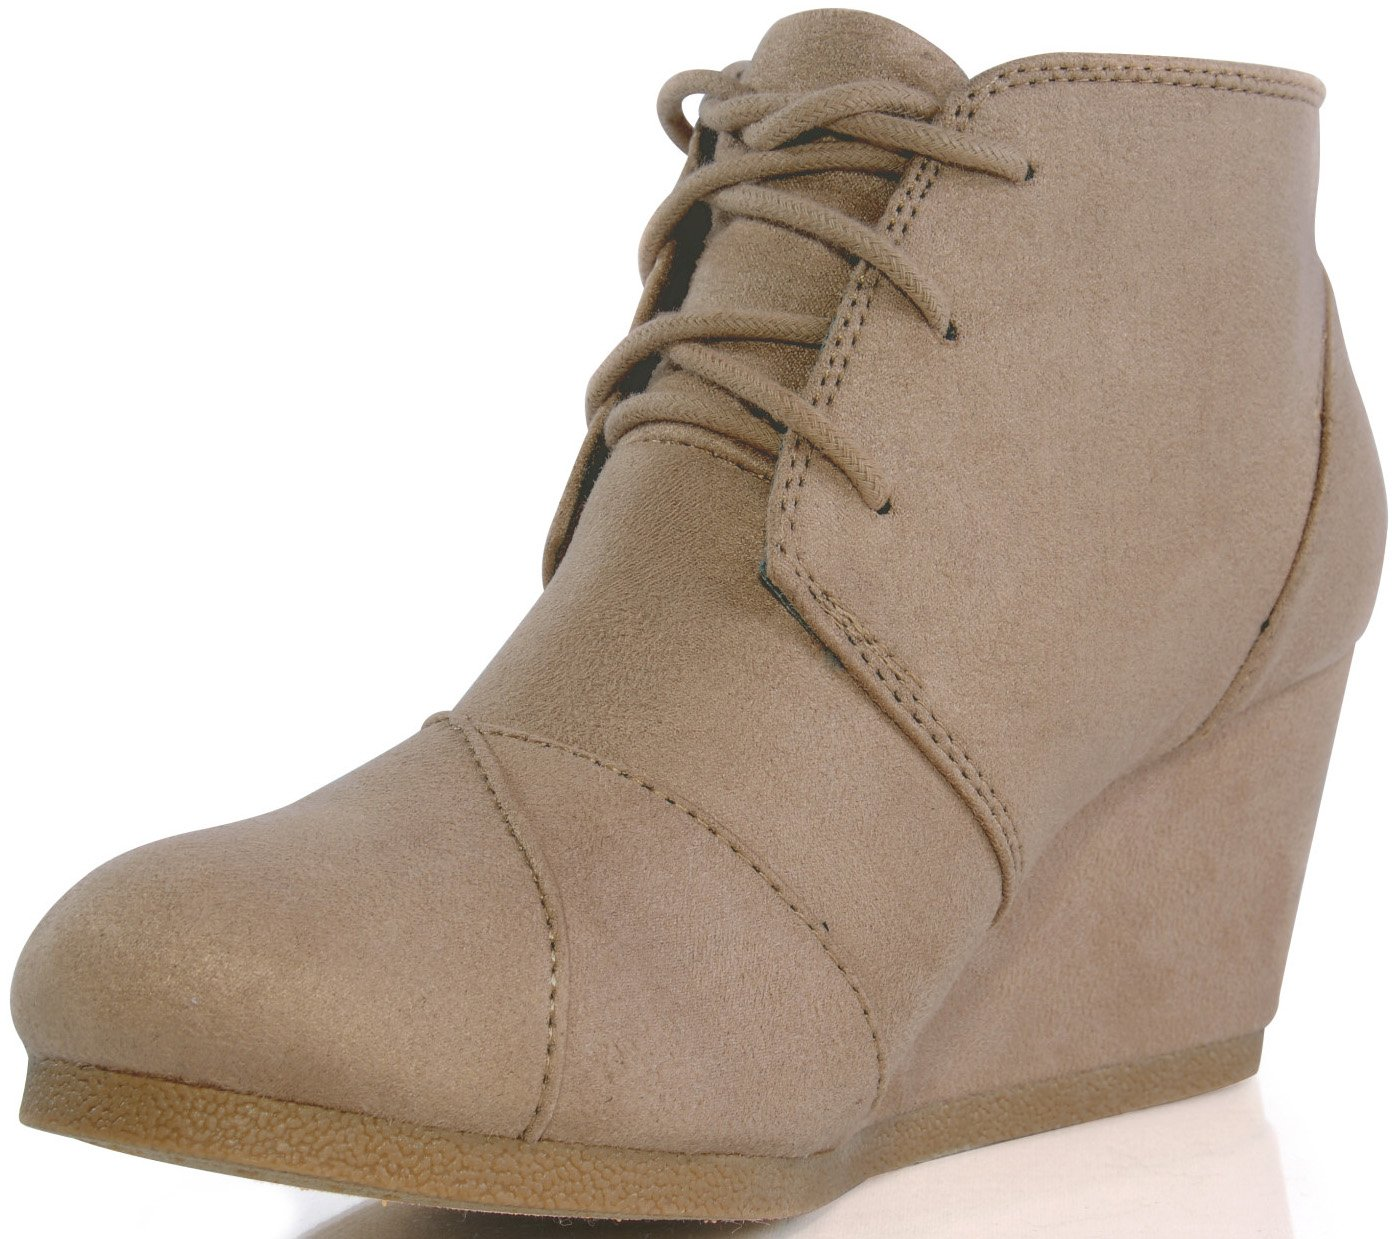 MARCOREPUBLIC Galaxy Womens Wedge Boots - (Taupe) - 10 by MARCOREPUBLIC (Image #3)